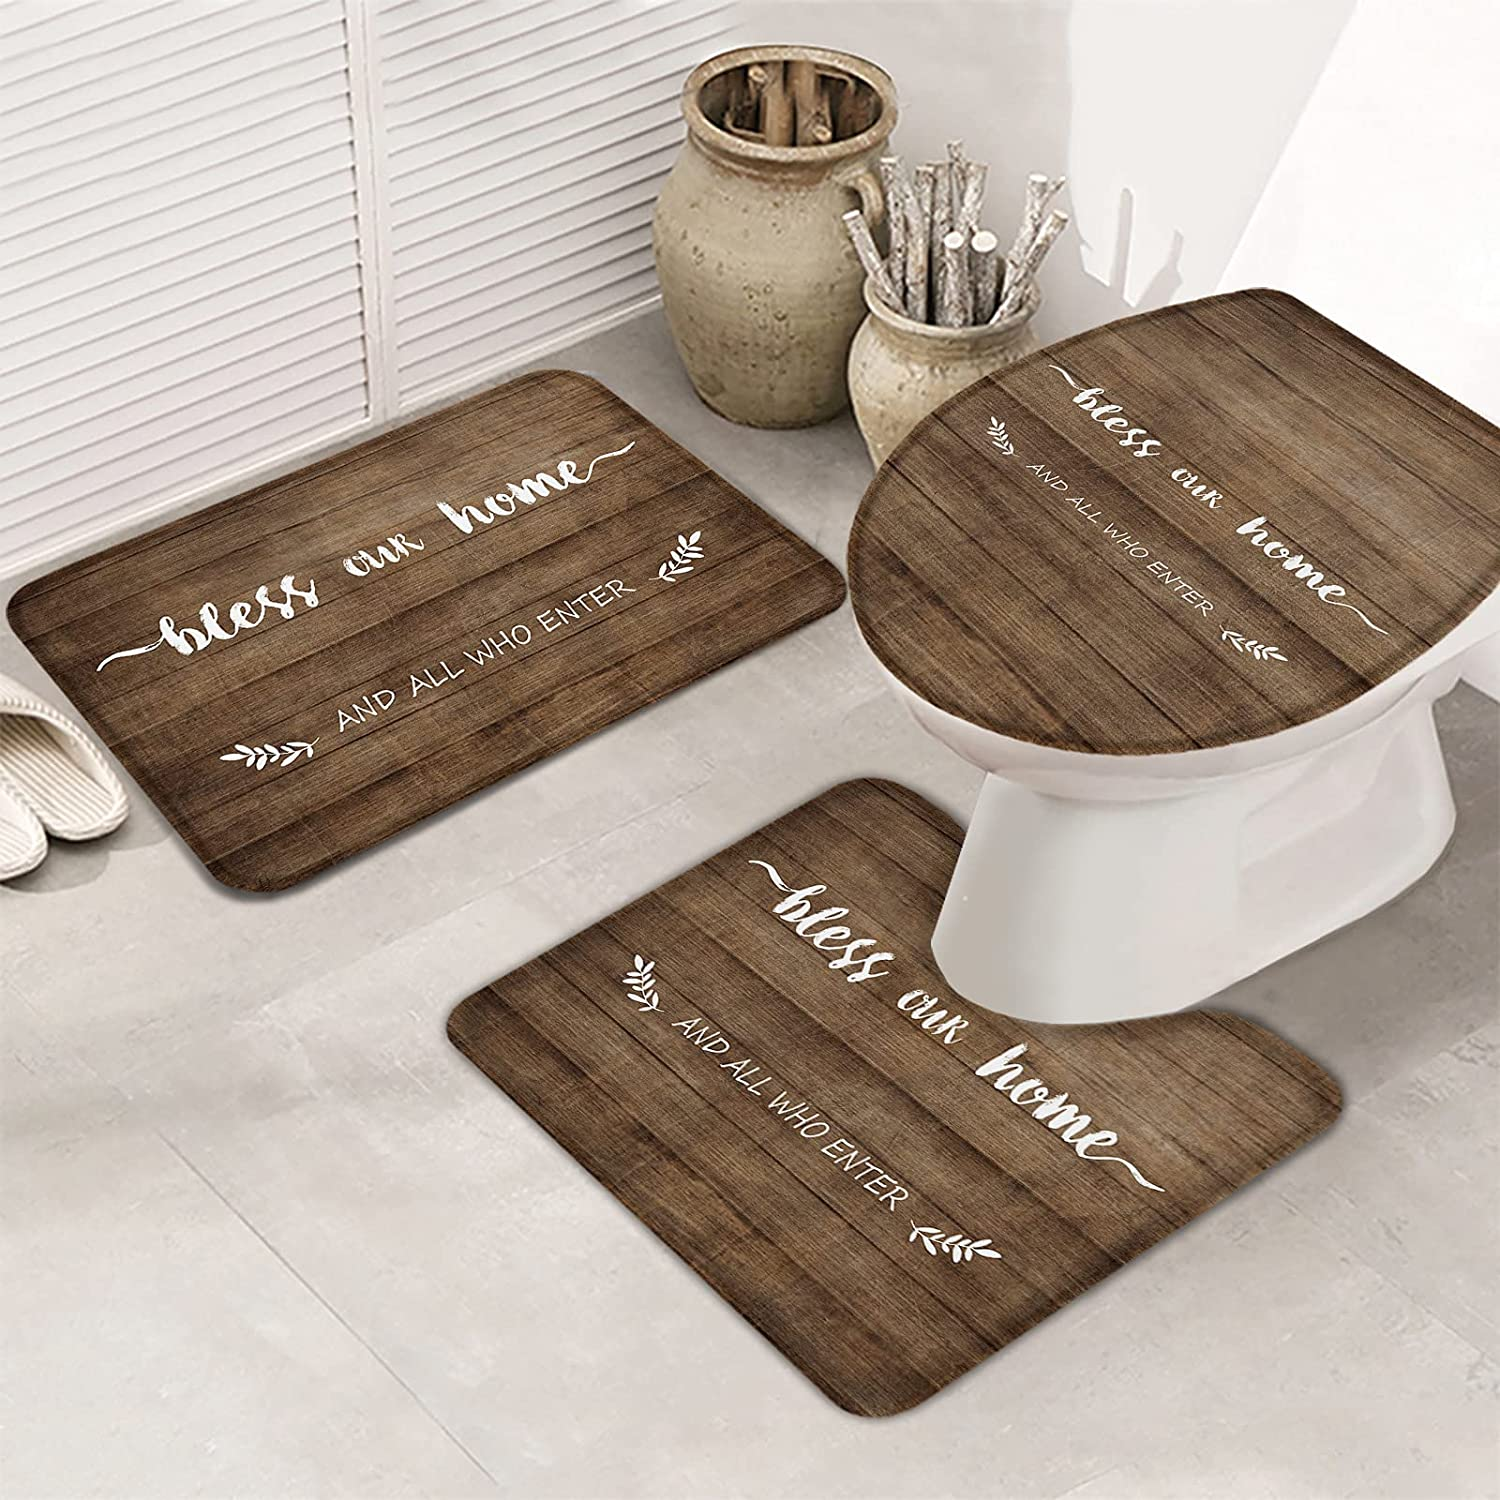 3 Pieces Bath Rug Set Toilet Seat Cover Sale special price Cheap sale W Our and All Bless Home